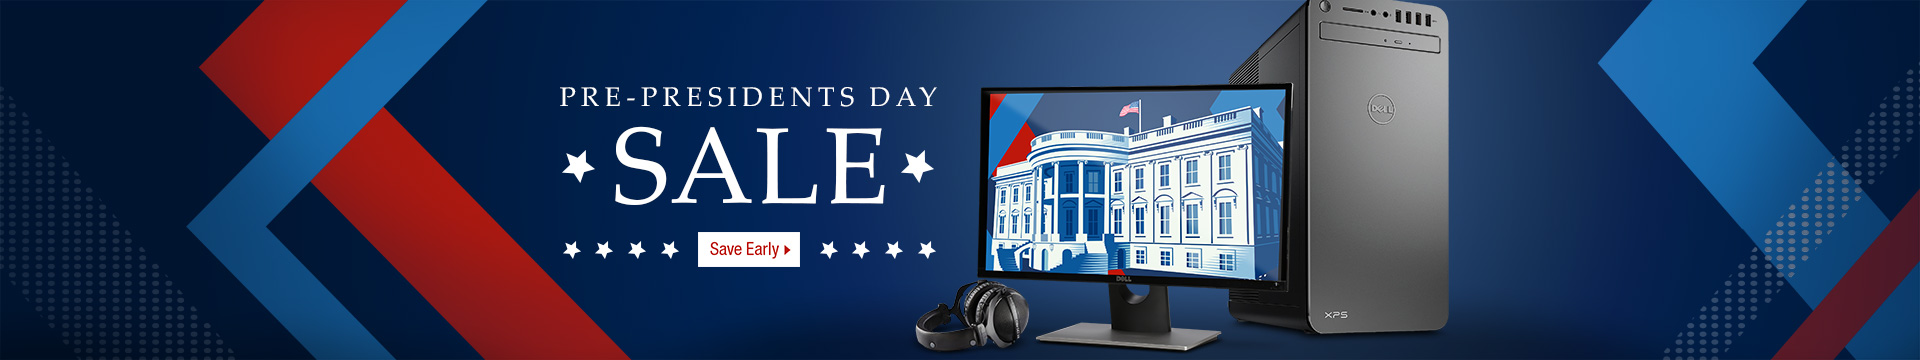 Today, the day is now used to honor not just Washington and Lincoln, but all American Presidents and what they have done for the United States. Not just a time to pay homage to our former presidents, Presidents Day has become known for the sales that many stores hold over the weekend.